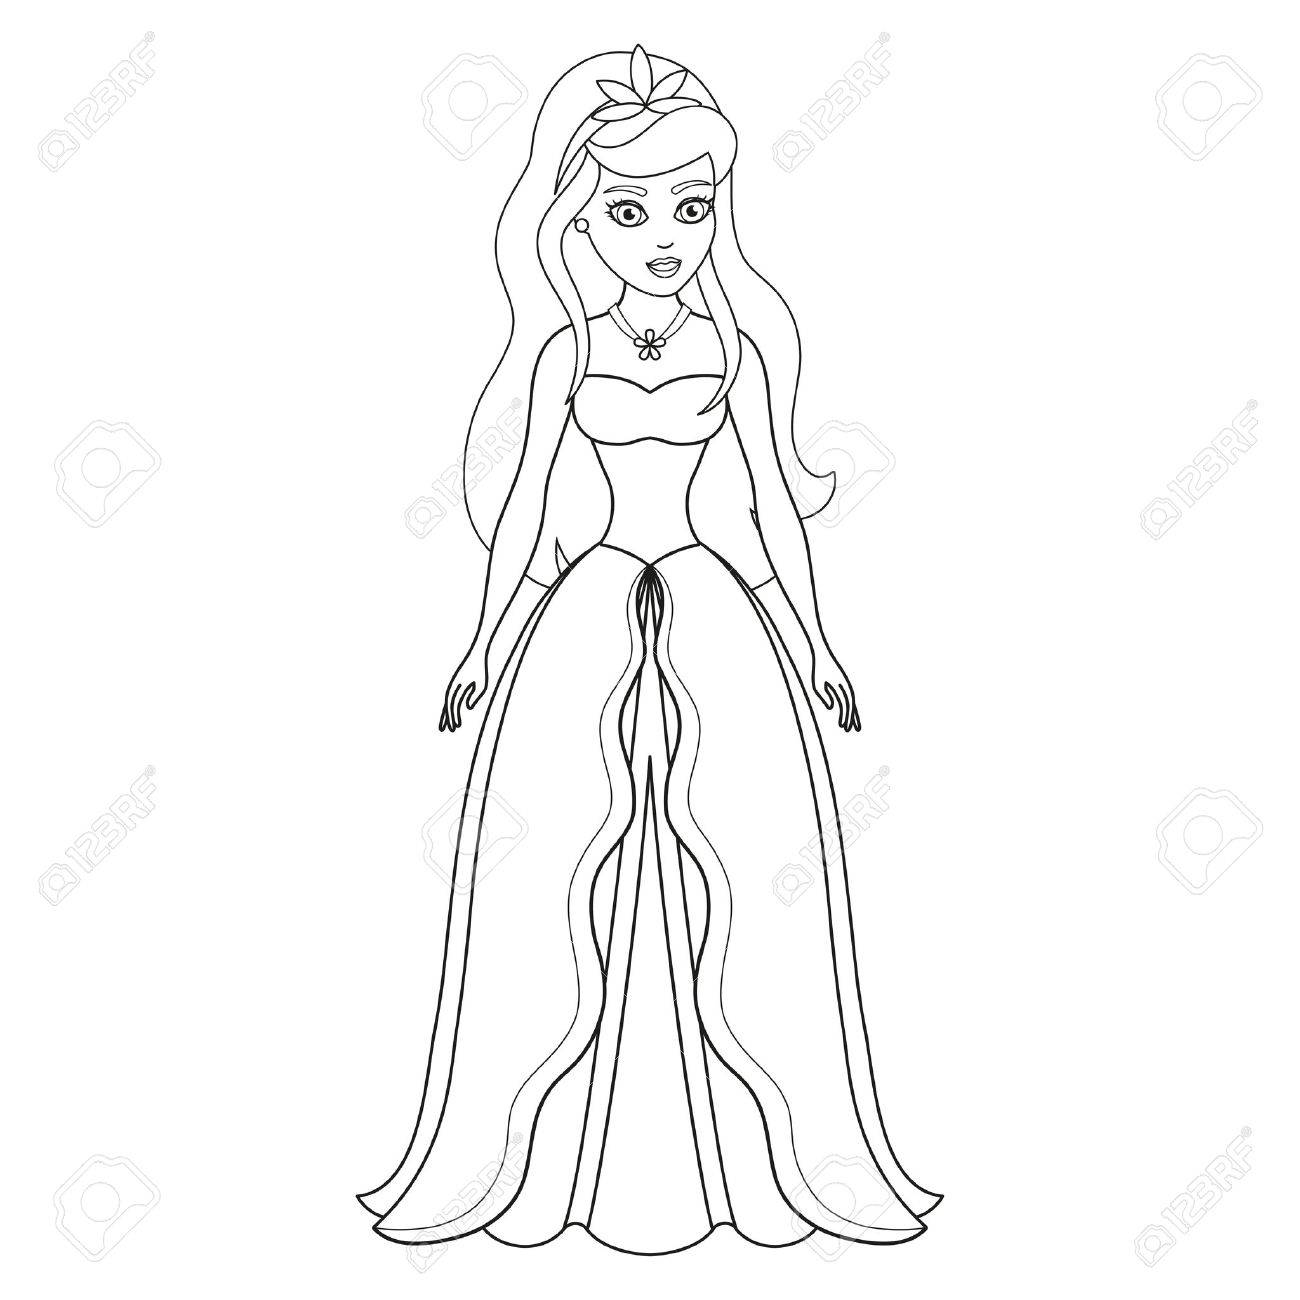 Illustration Of Beautiful Princess Coloring Book Page Royalty Free Cliparts Vectors And Stock Illustration Image 37064238